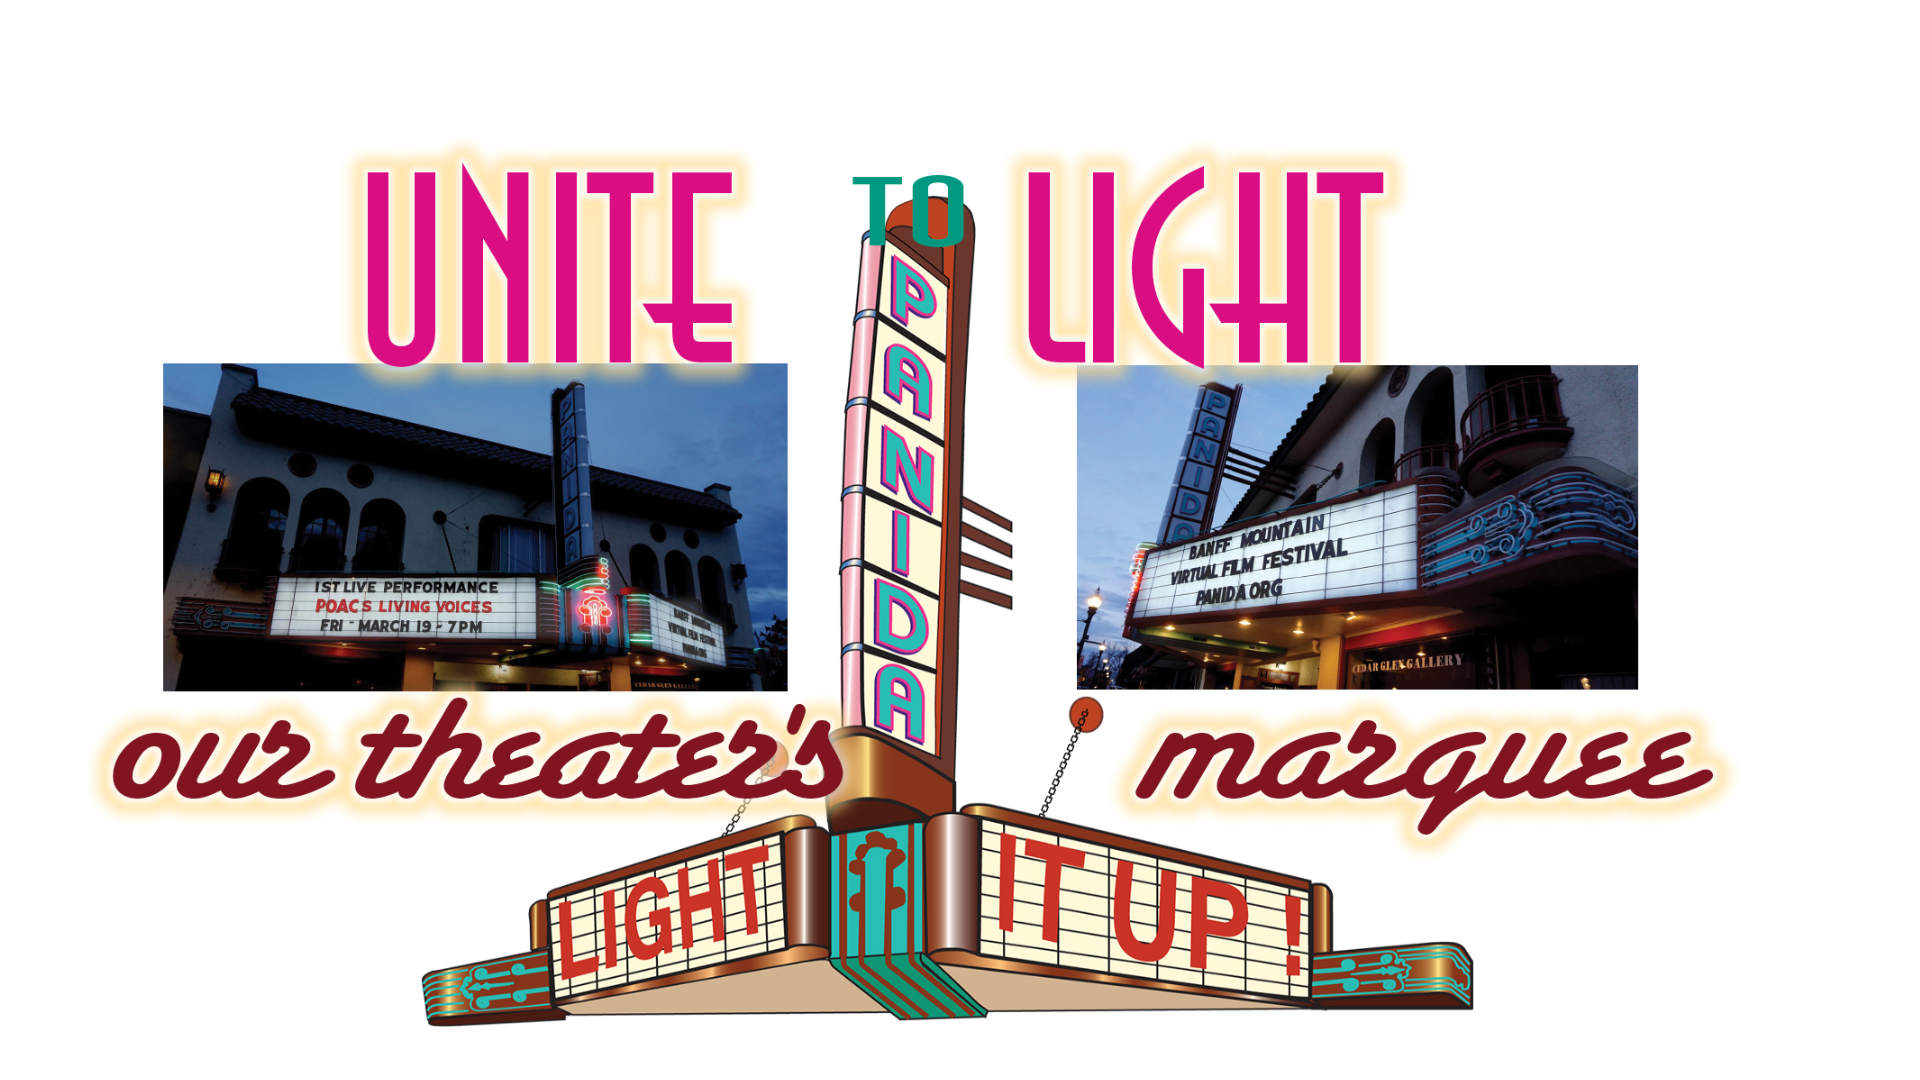 Unite to Light Marquee of the Panida Theater